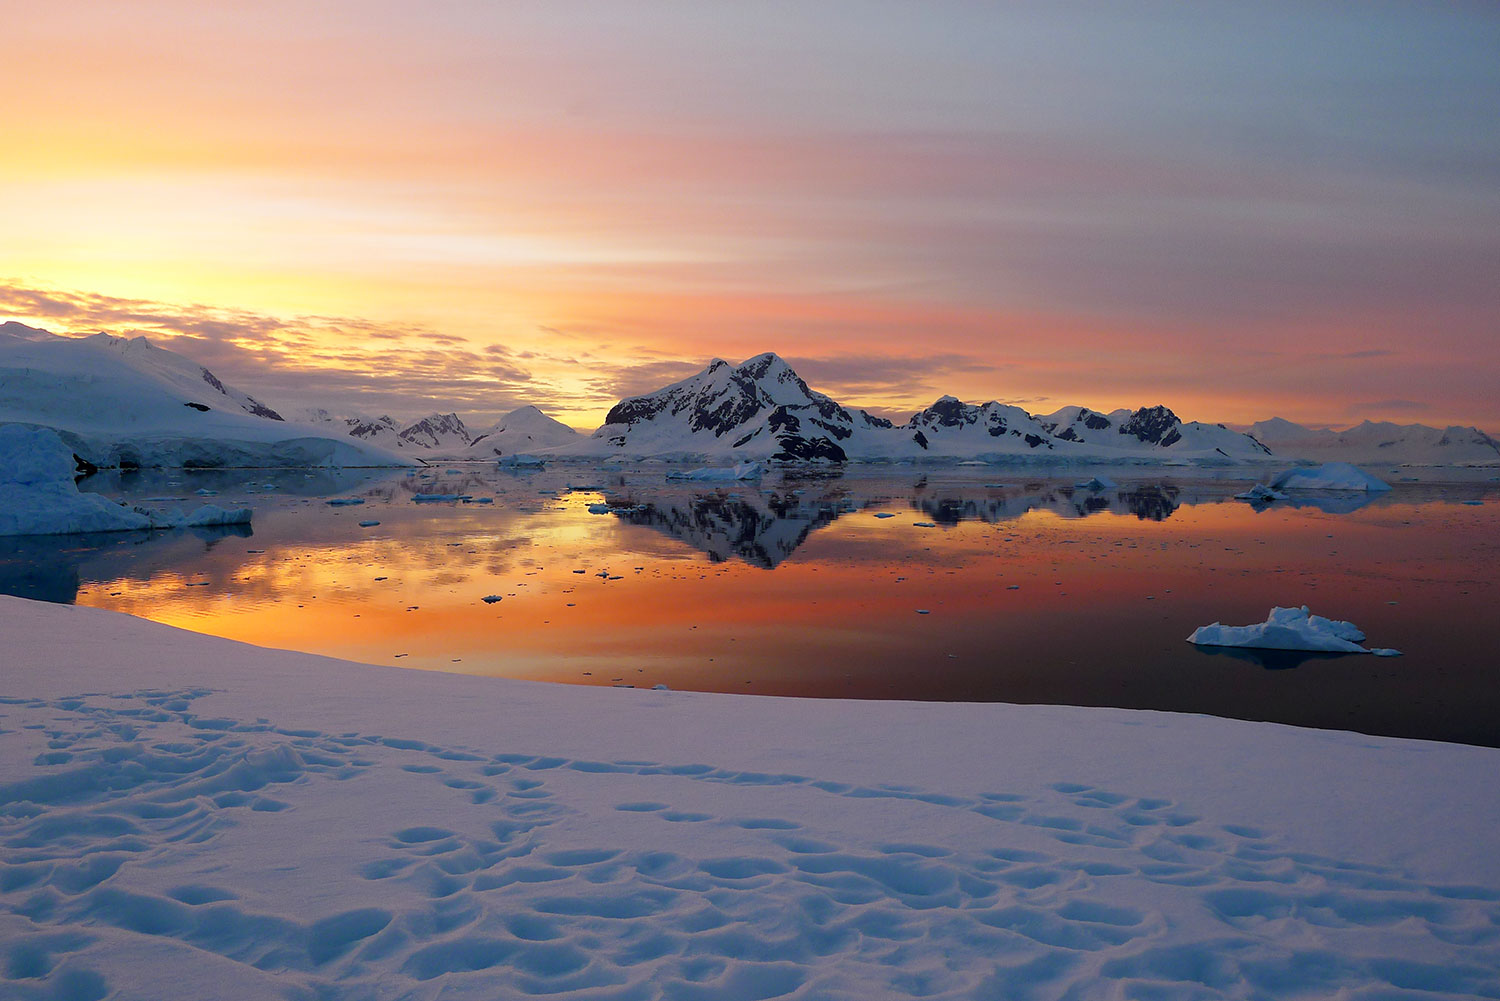 The sun sets over Leith Cove, Antarctica, setting the sky alight with spectacular hues of pink, orange and red.